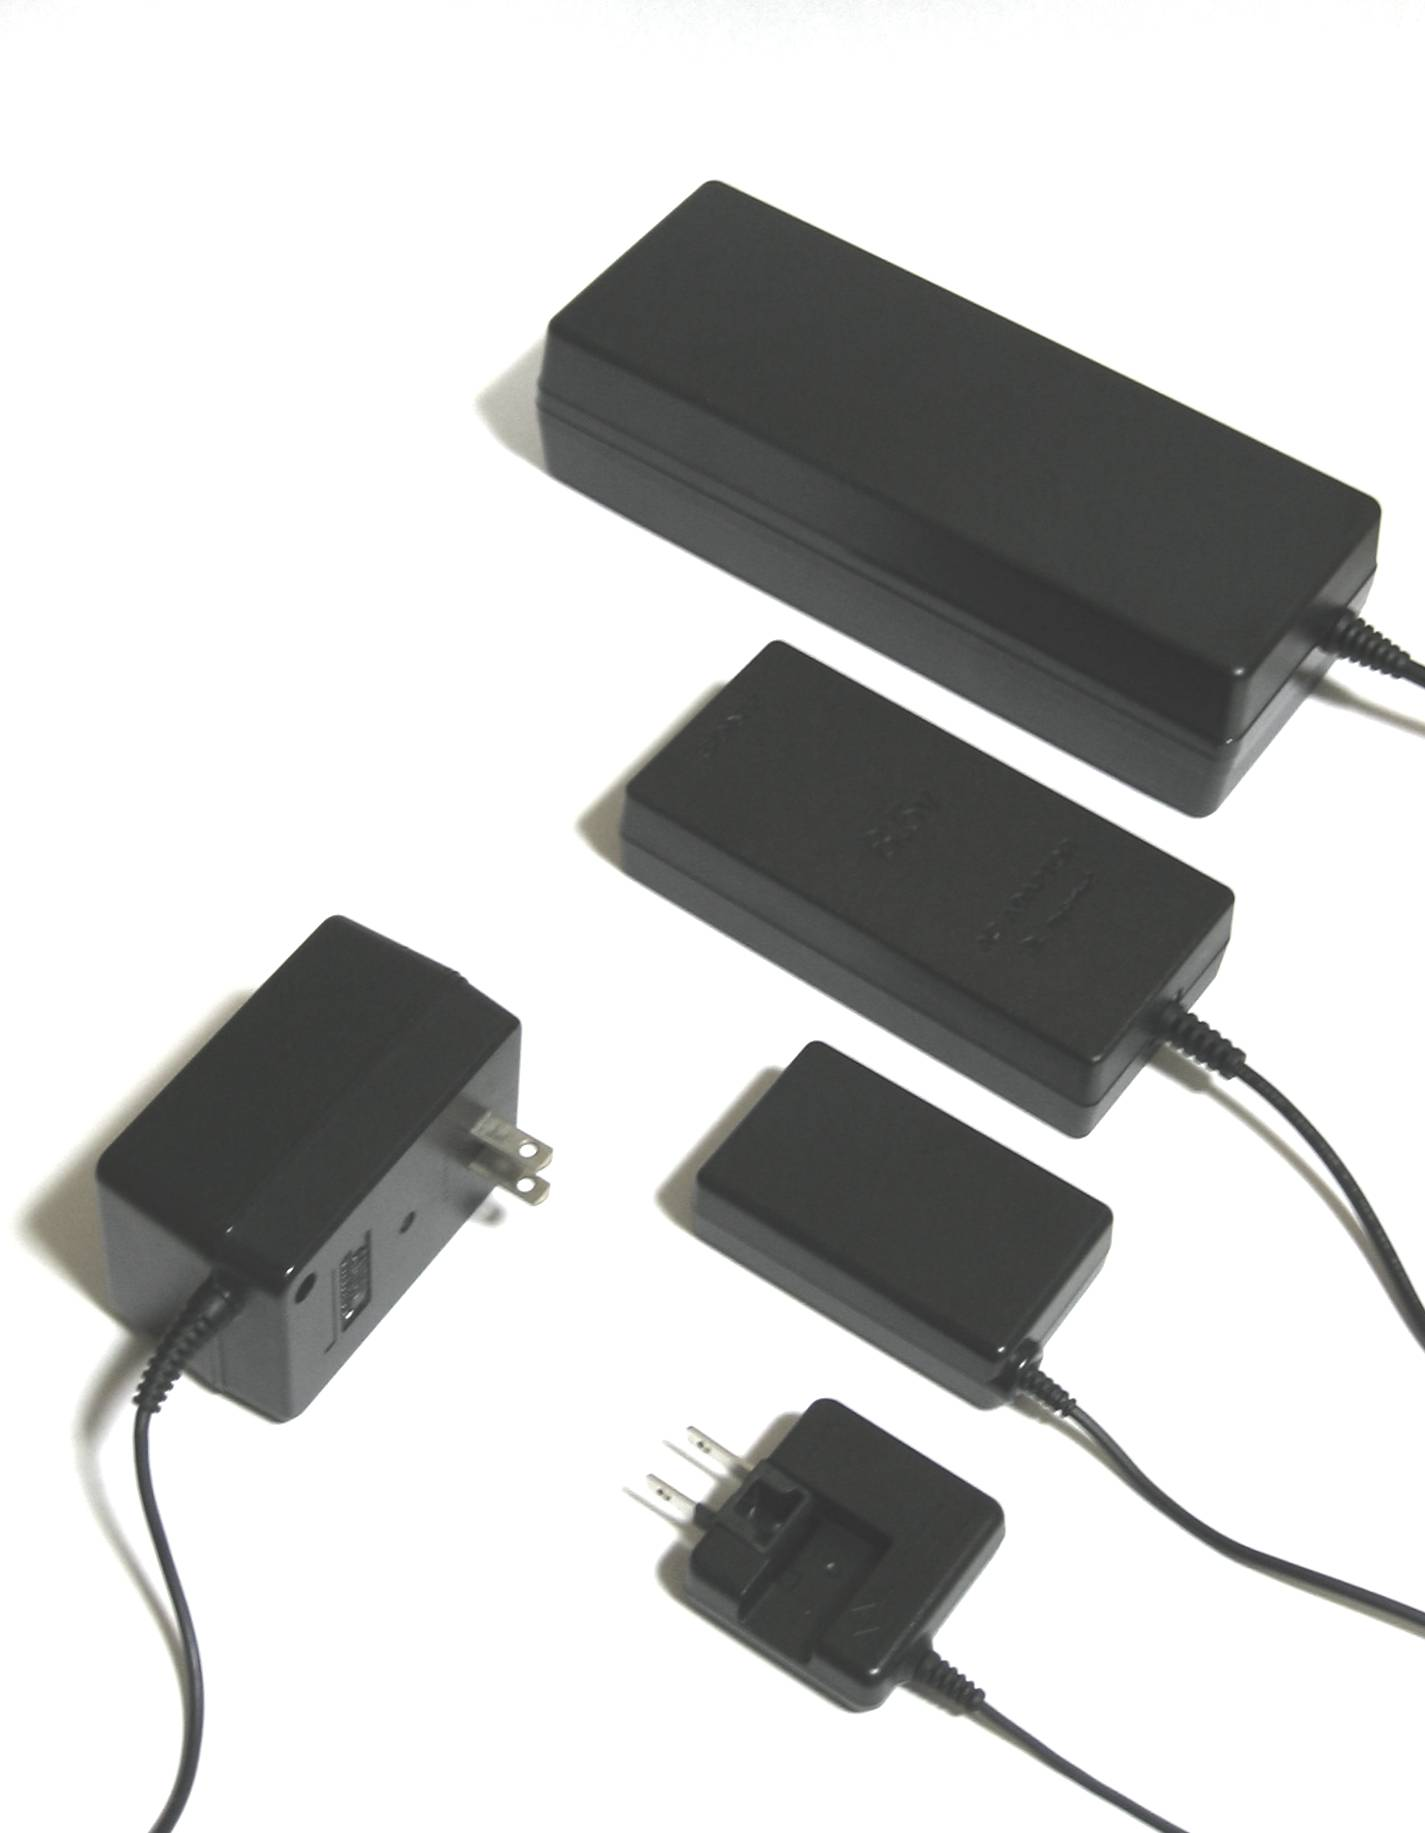 A typical set of voltage converters